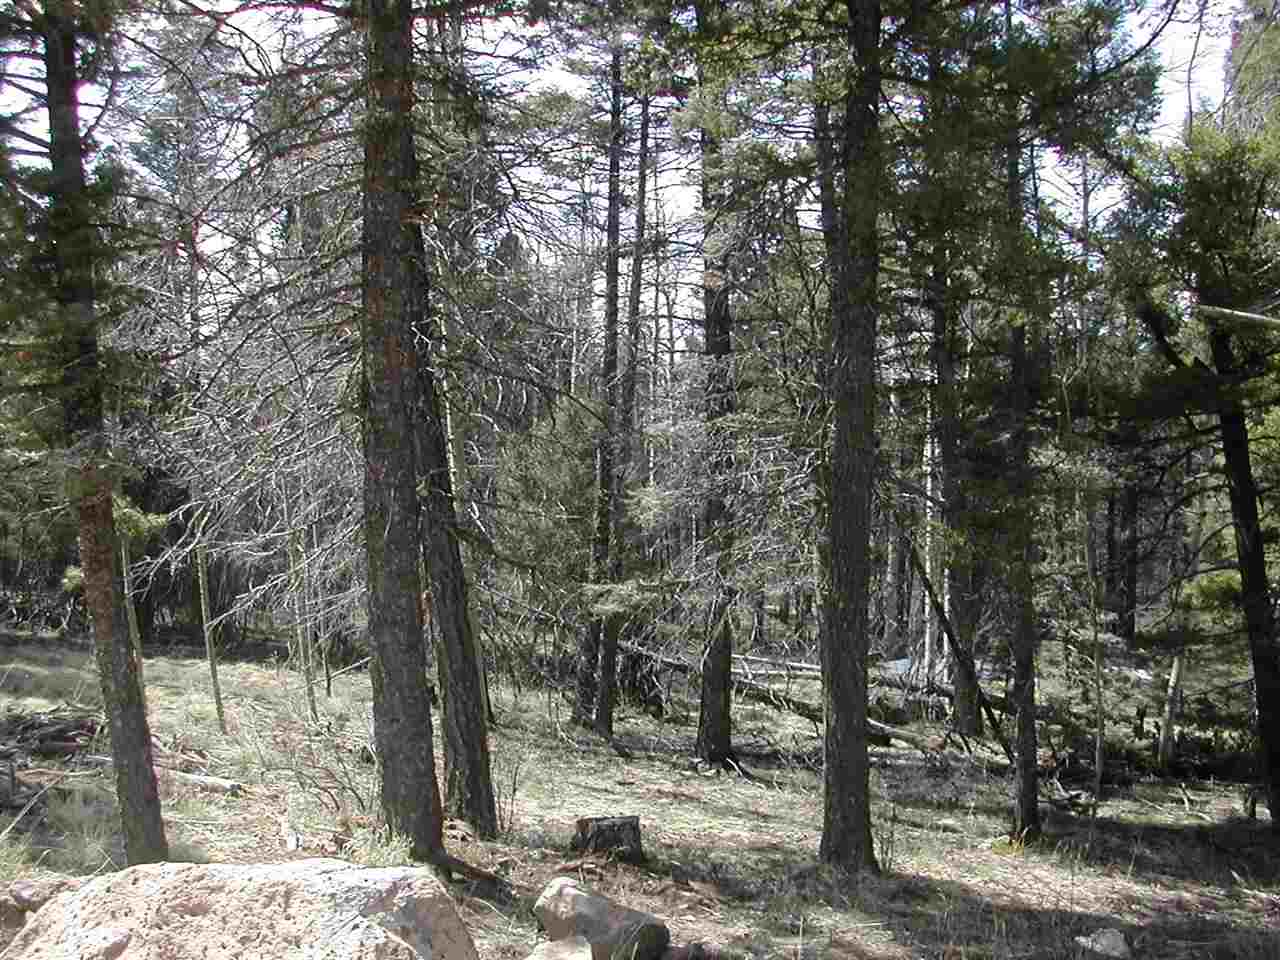 Lot is in a great location with nice views and very close to Heading Home.  This would be a great place to build your mountain dream home.  The selling price is so great for this beautiful property.